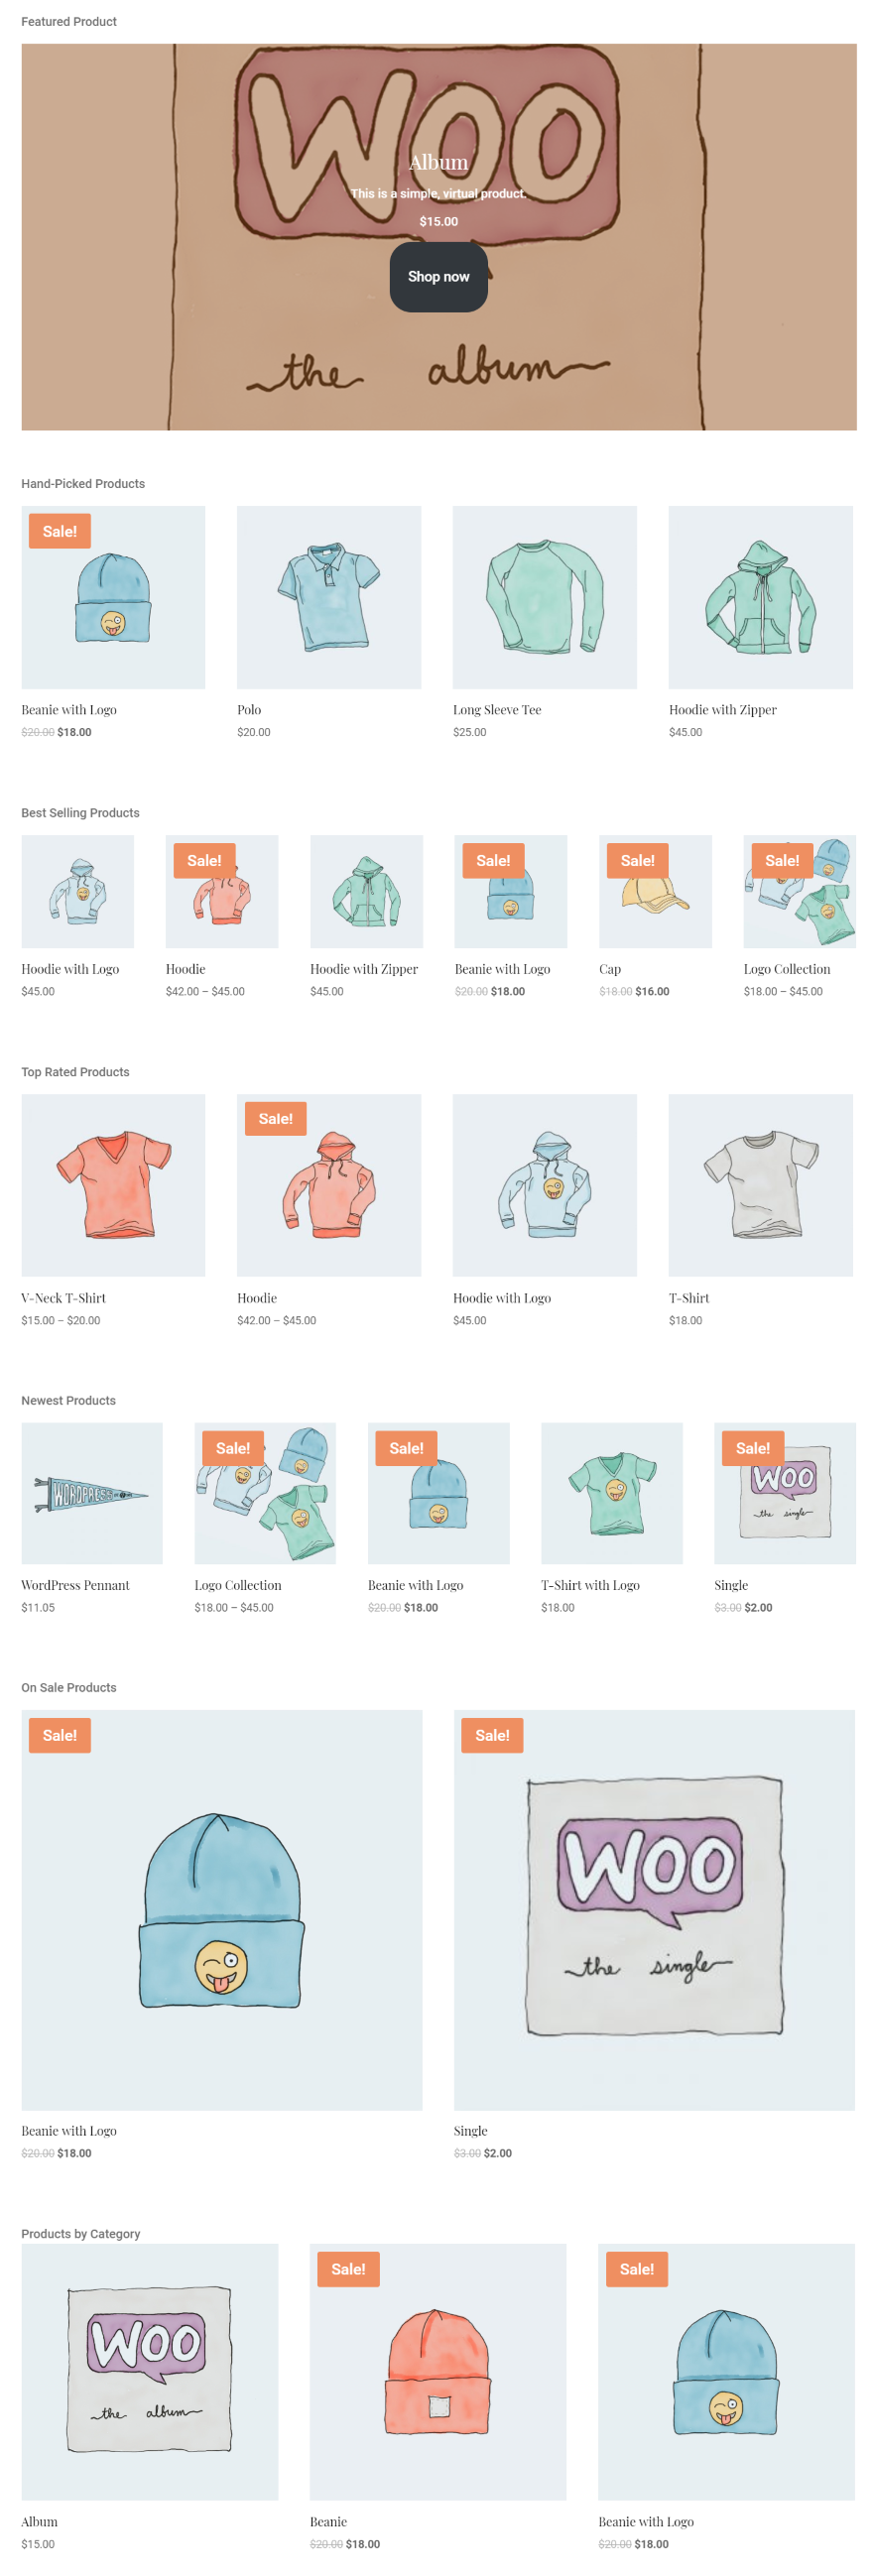 An Overview of the New WooCommerce Blocks Plugin